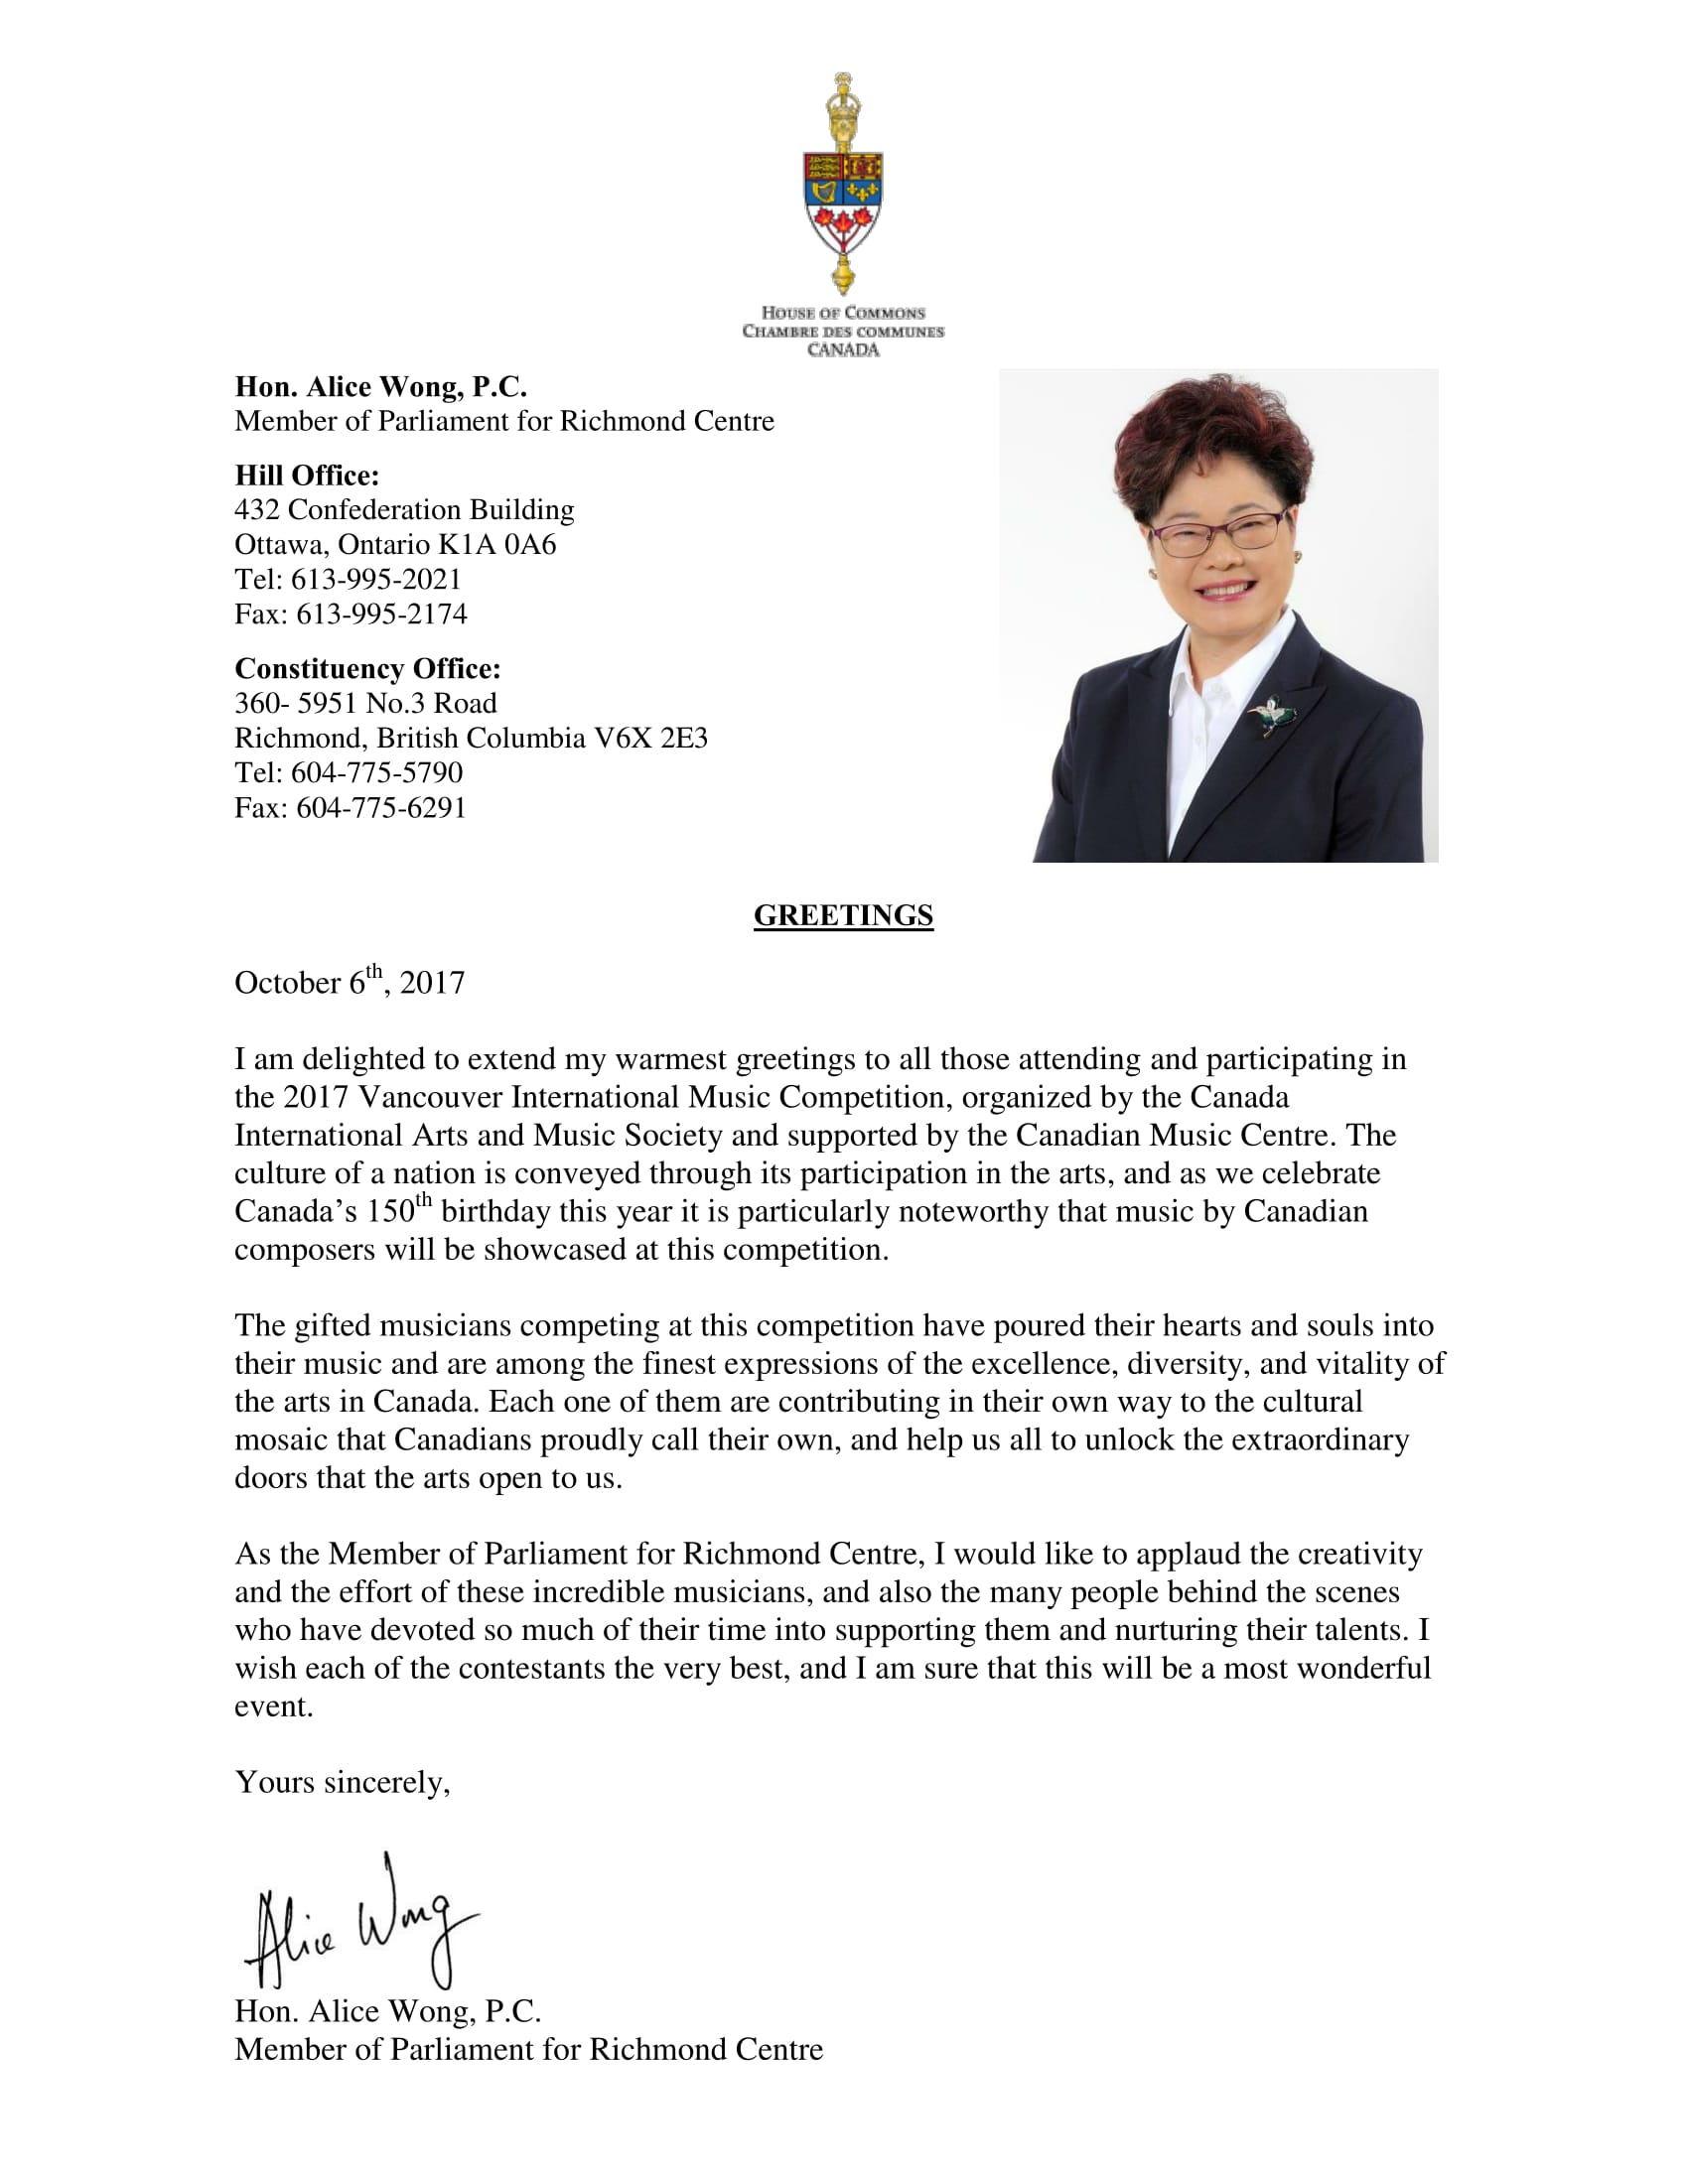 Greeting Letter From Alice Wong 1 Vancouver International Music